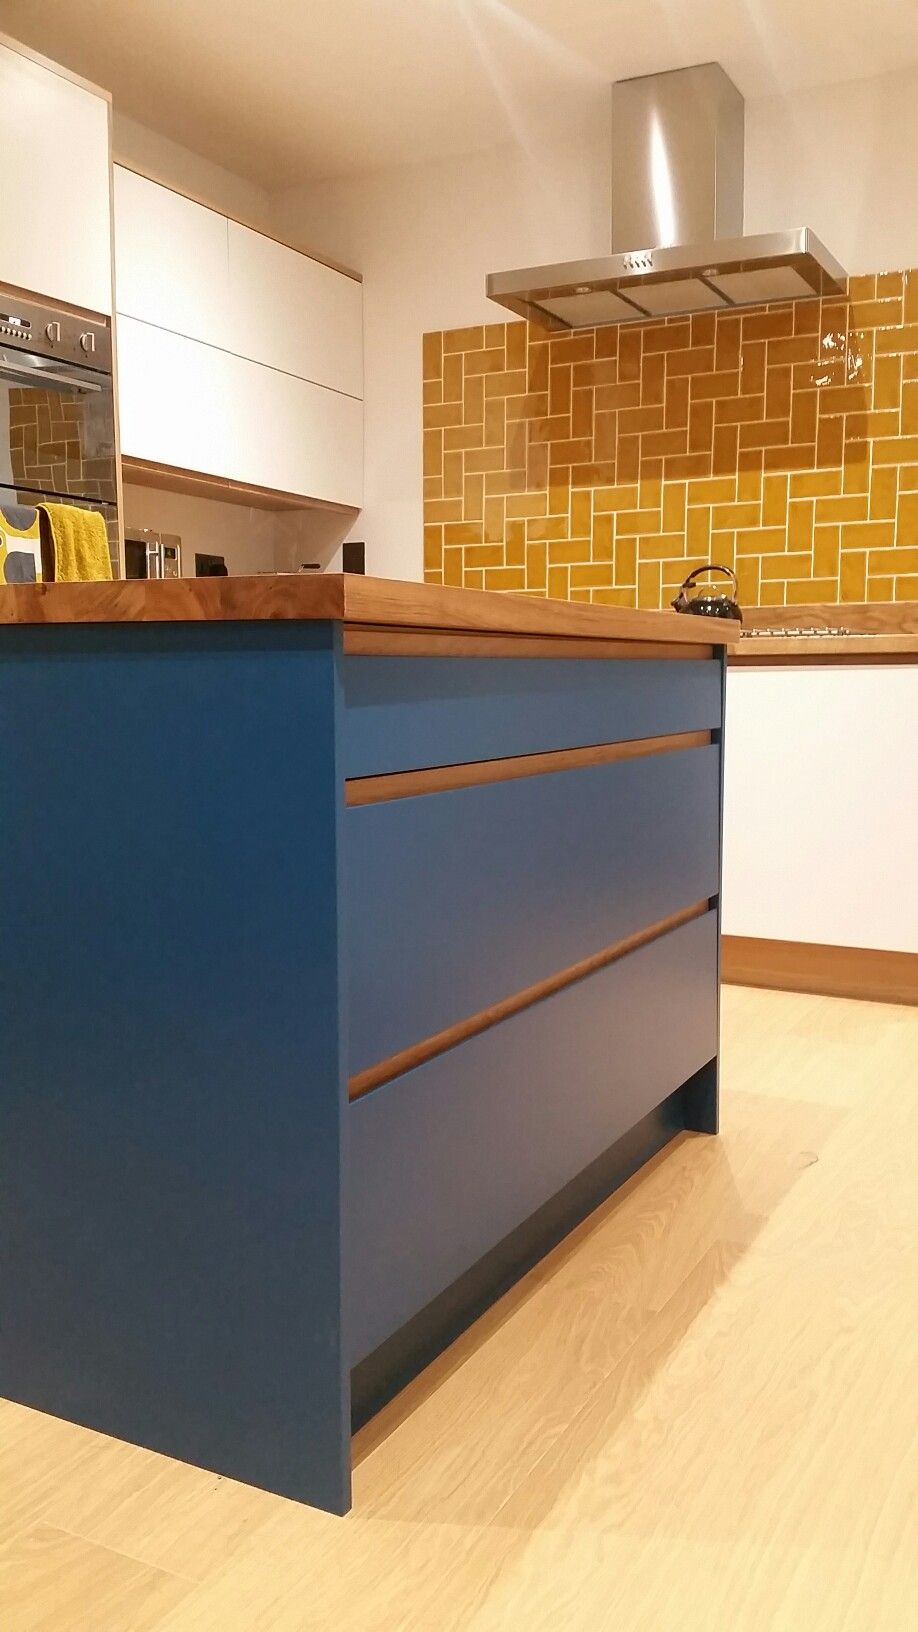 Lewis Kitchen Furniture Kitchen Is Pure From John Lewis Of Hungerford With Fired Earth